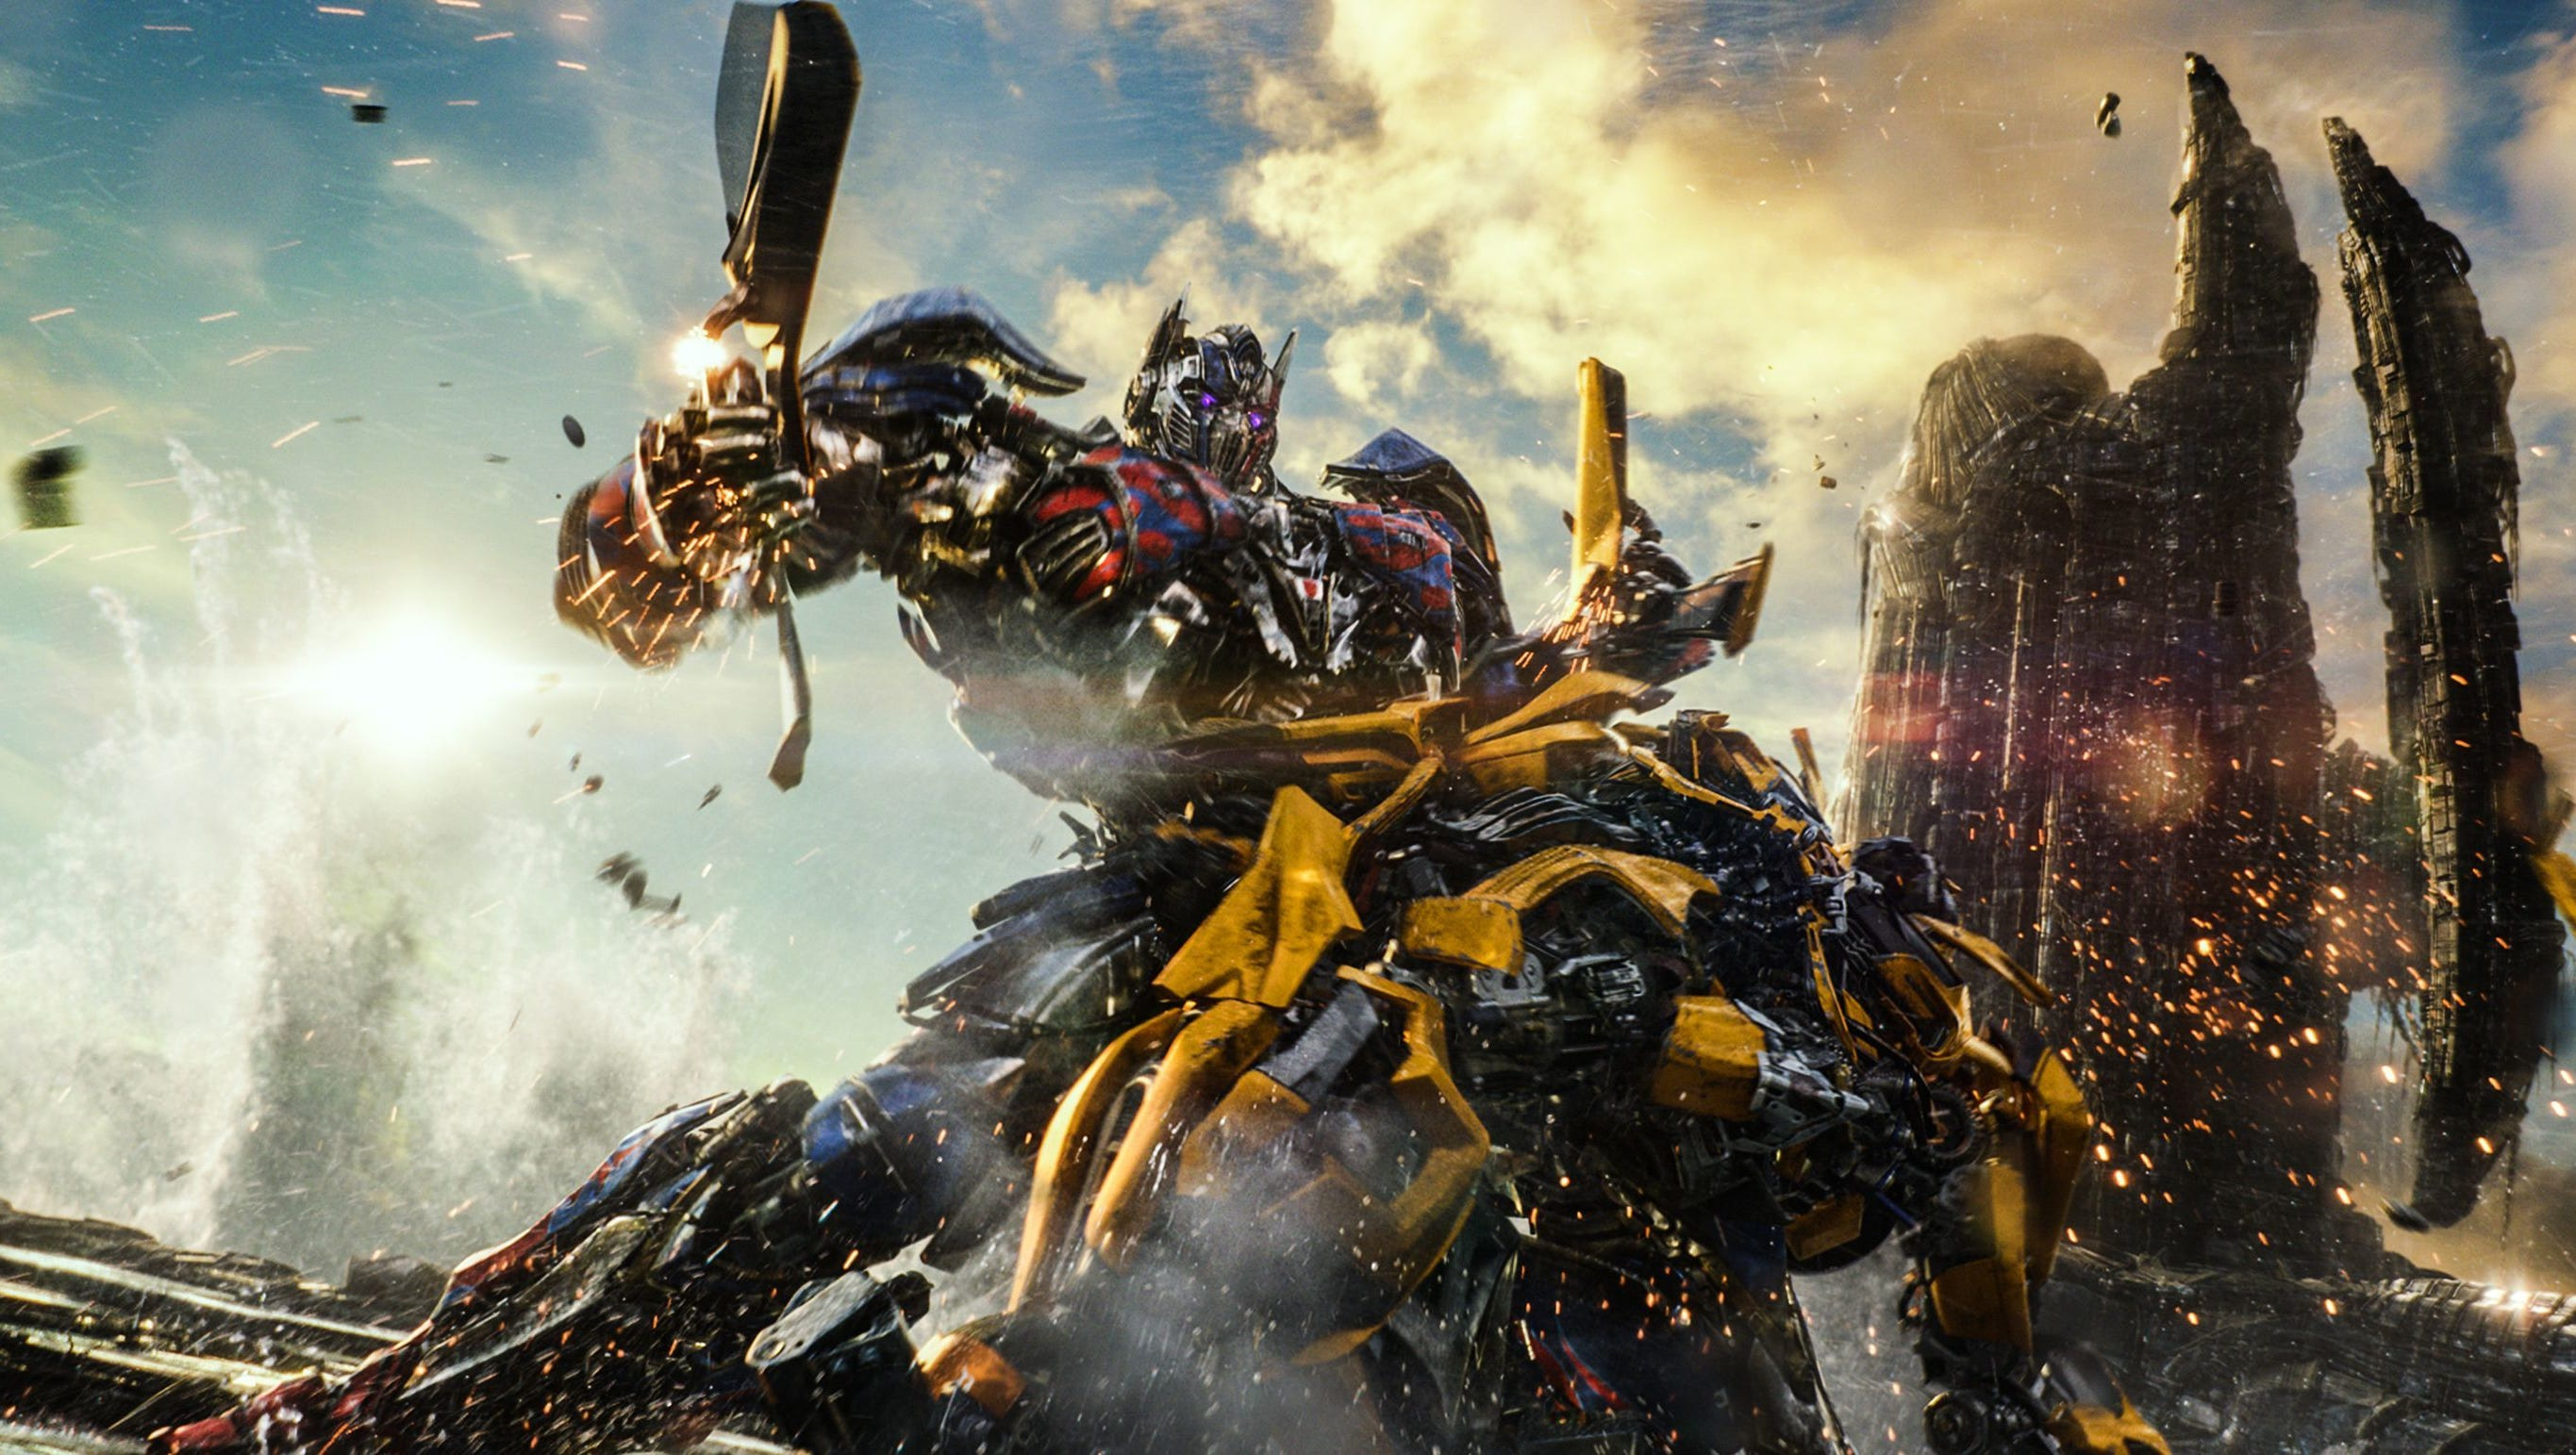 Transformers: The Last Knight' might be over our heads: Podcast